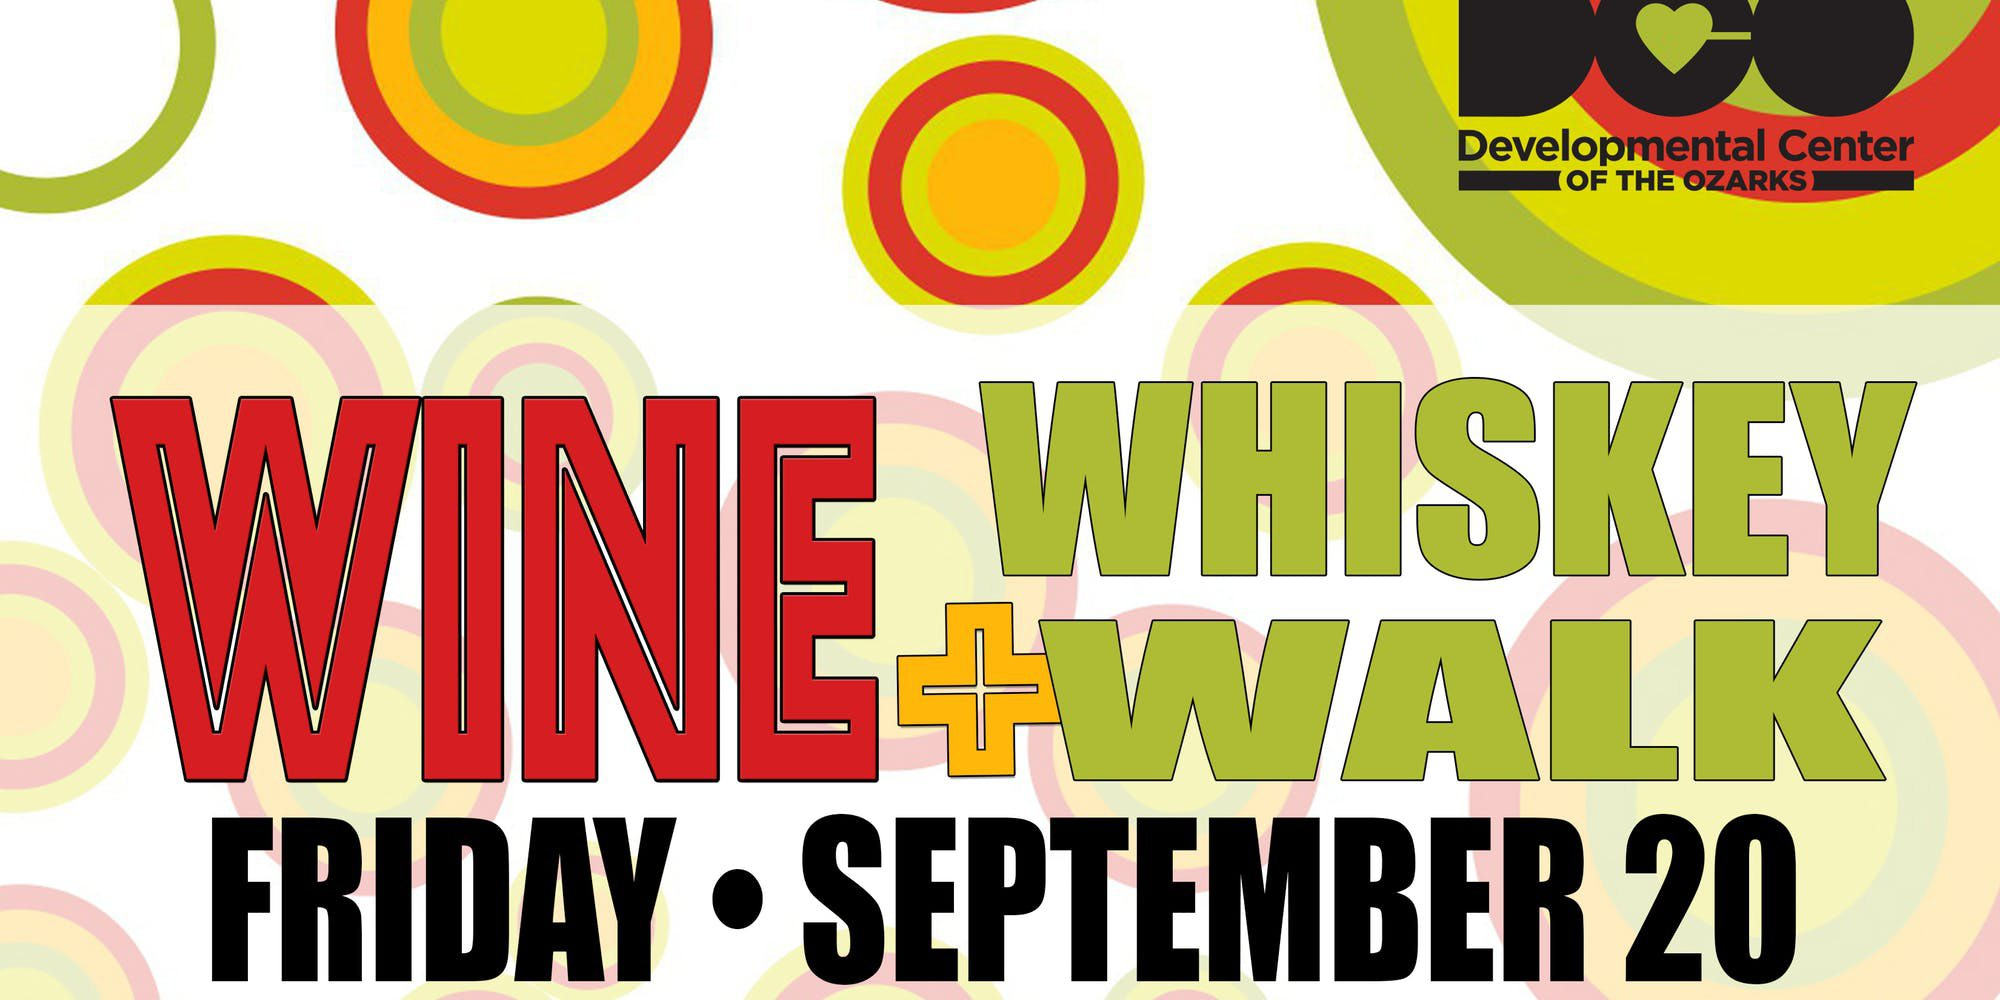 Attend the Wine & Whiskey Walk to support the Development Center of the Ozarks